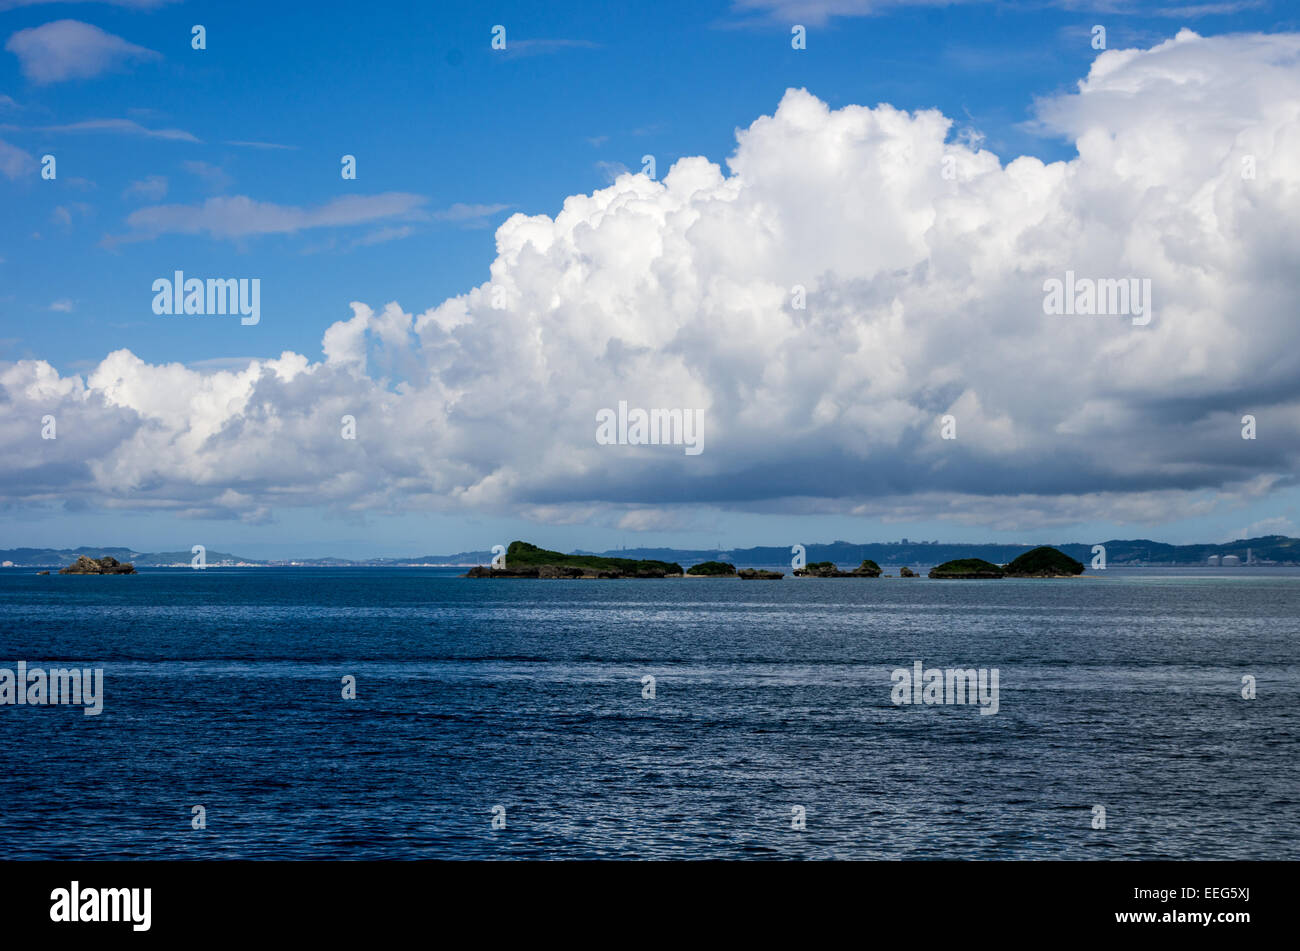 A view of Okinawa Island from the ferry to Tsuken Island. - Stock Image